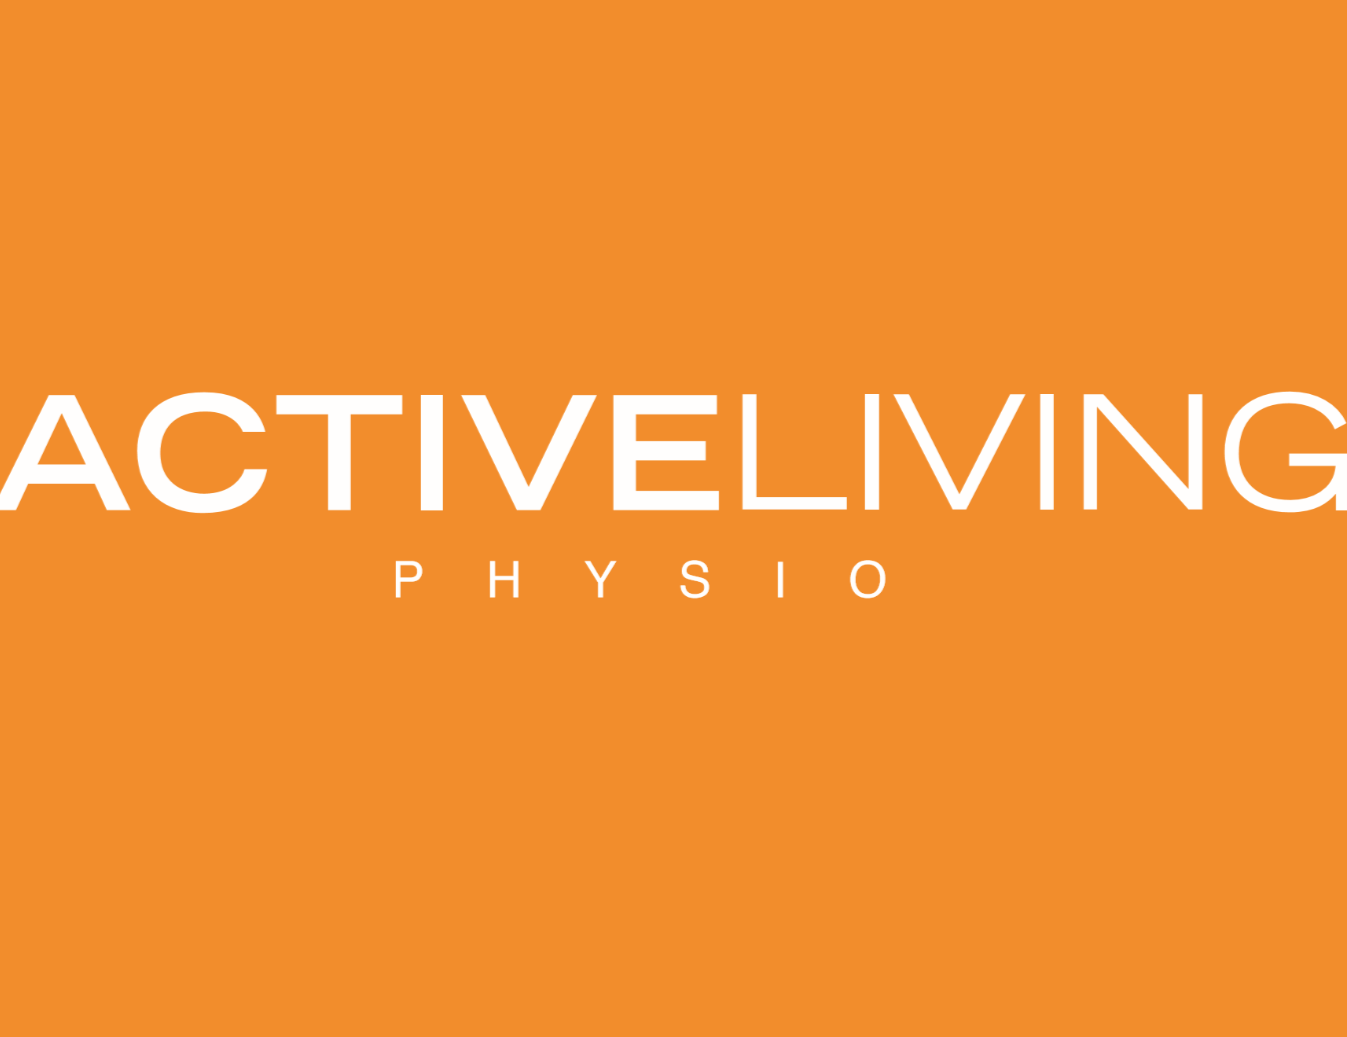 ACTIVE LIVING PHYSIO 2016 LIMITED